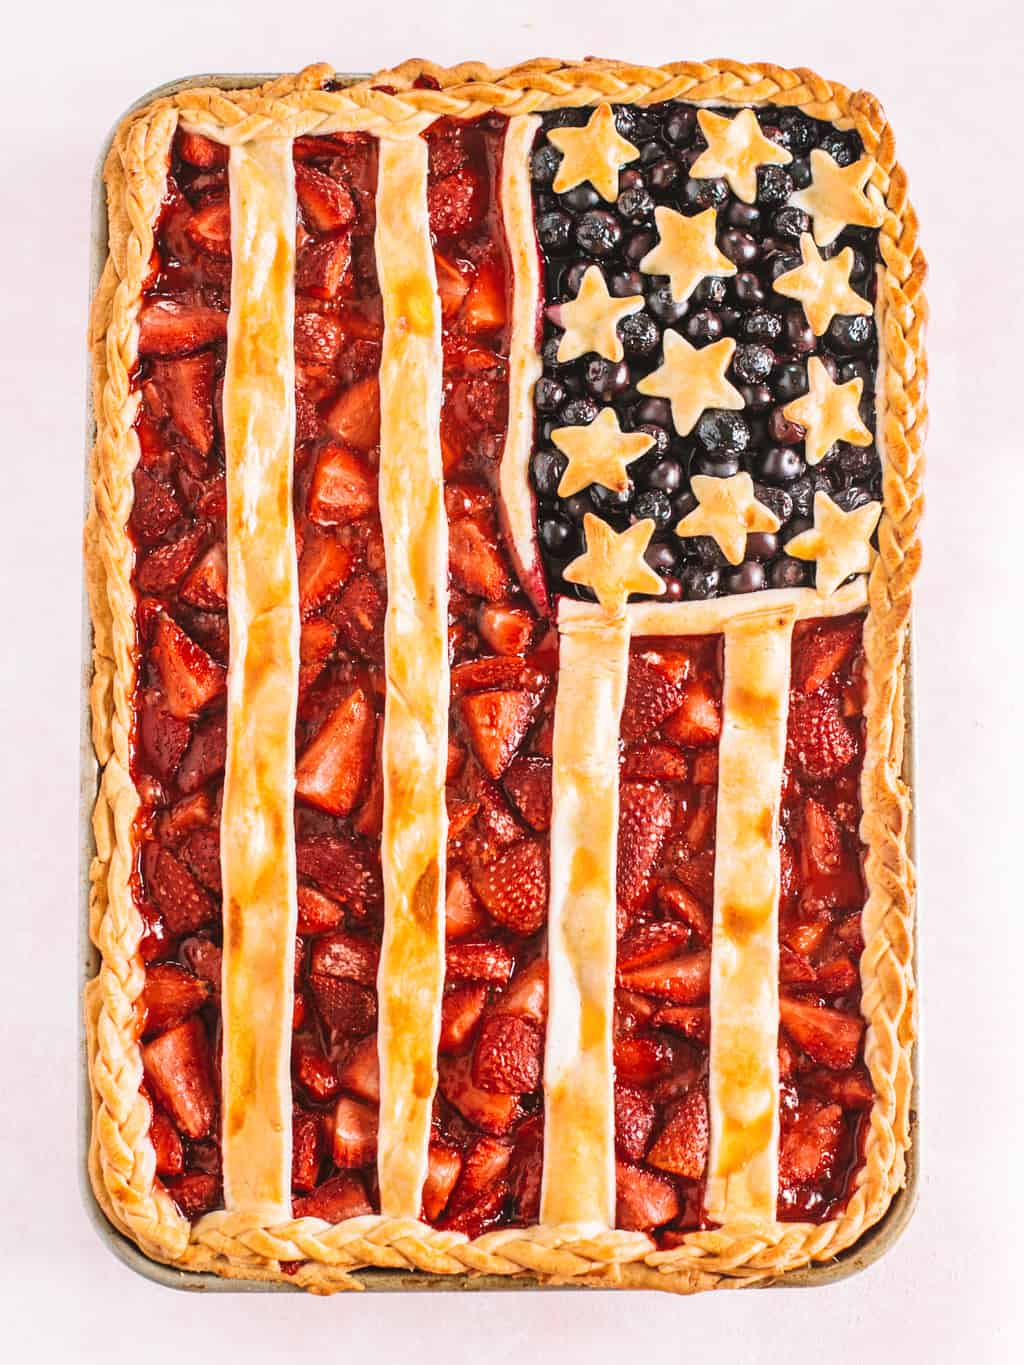 American flag pie baked on a baking sheet with a pink background.